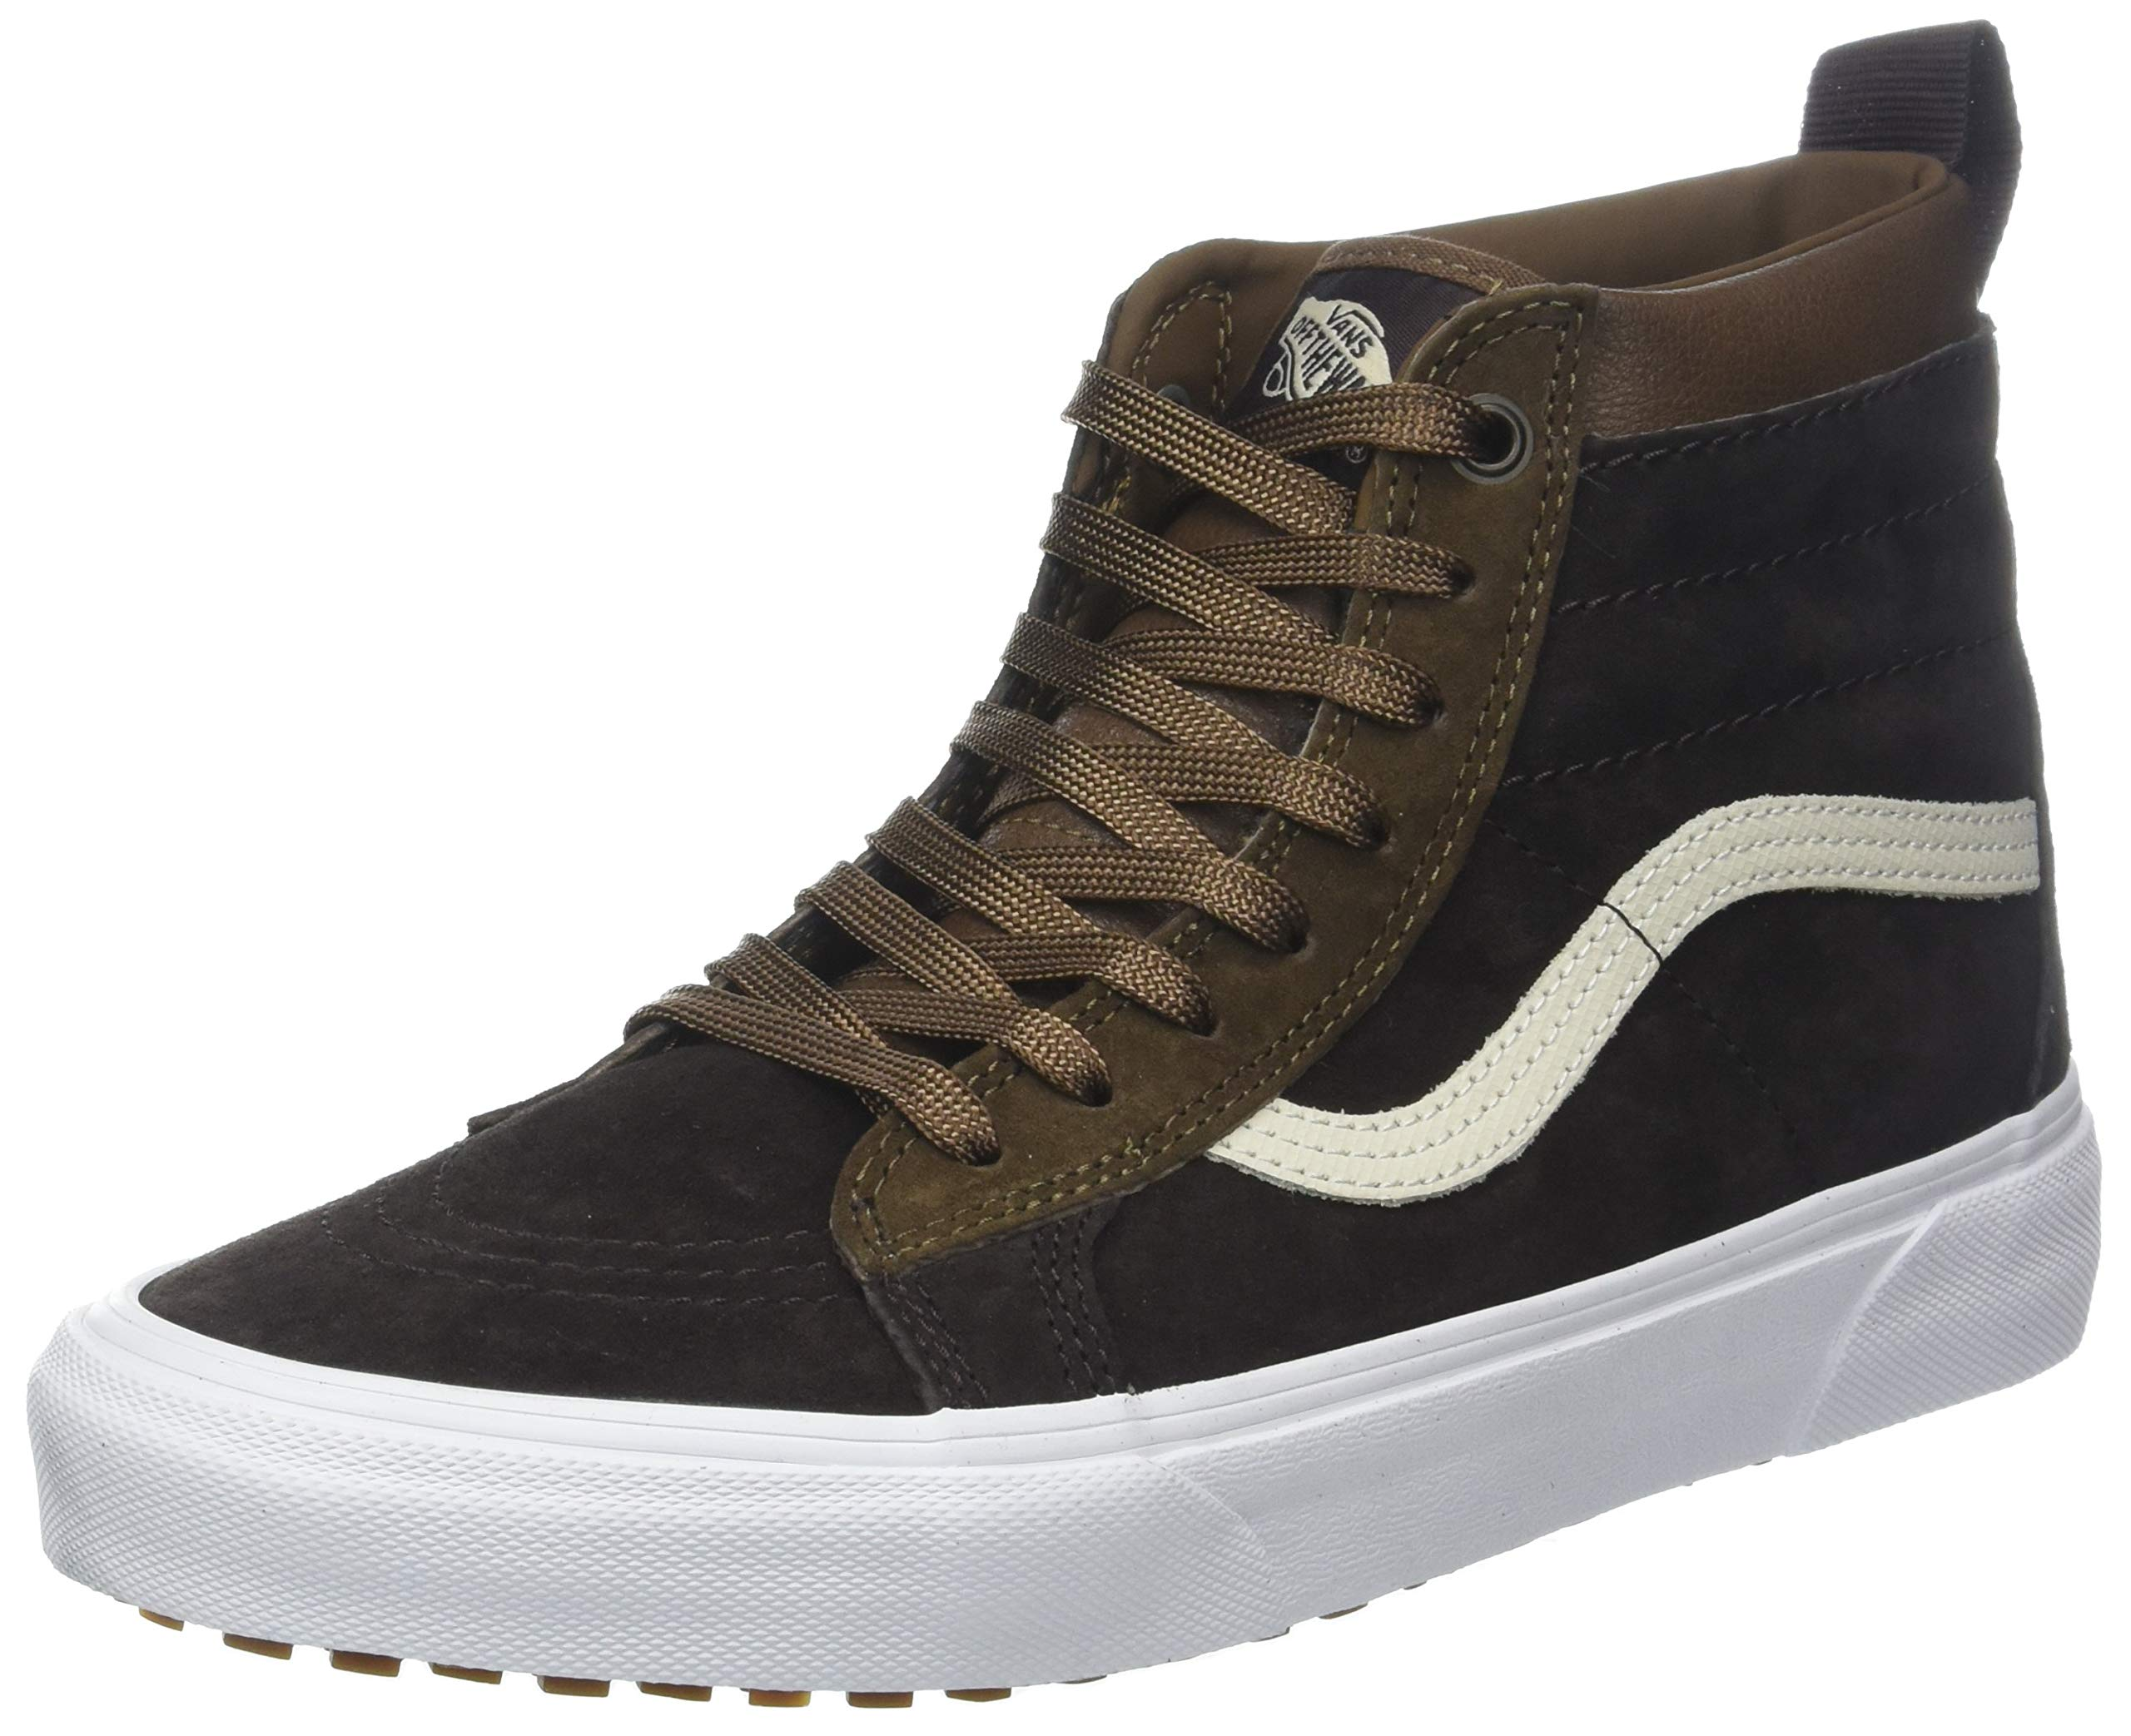 c5ac0c5f7f2 Galleon - Vans Unisex Adults  Sk8-Hi MTE Trainers